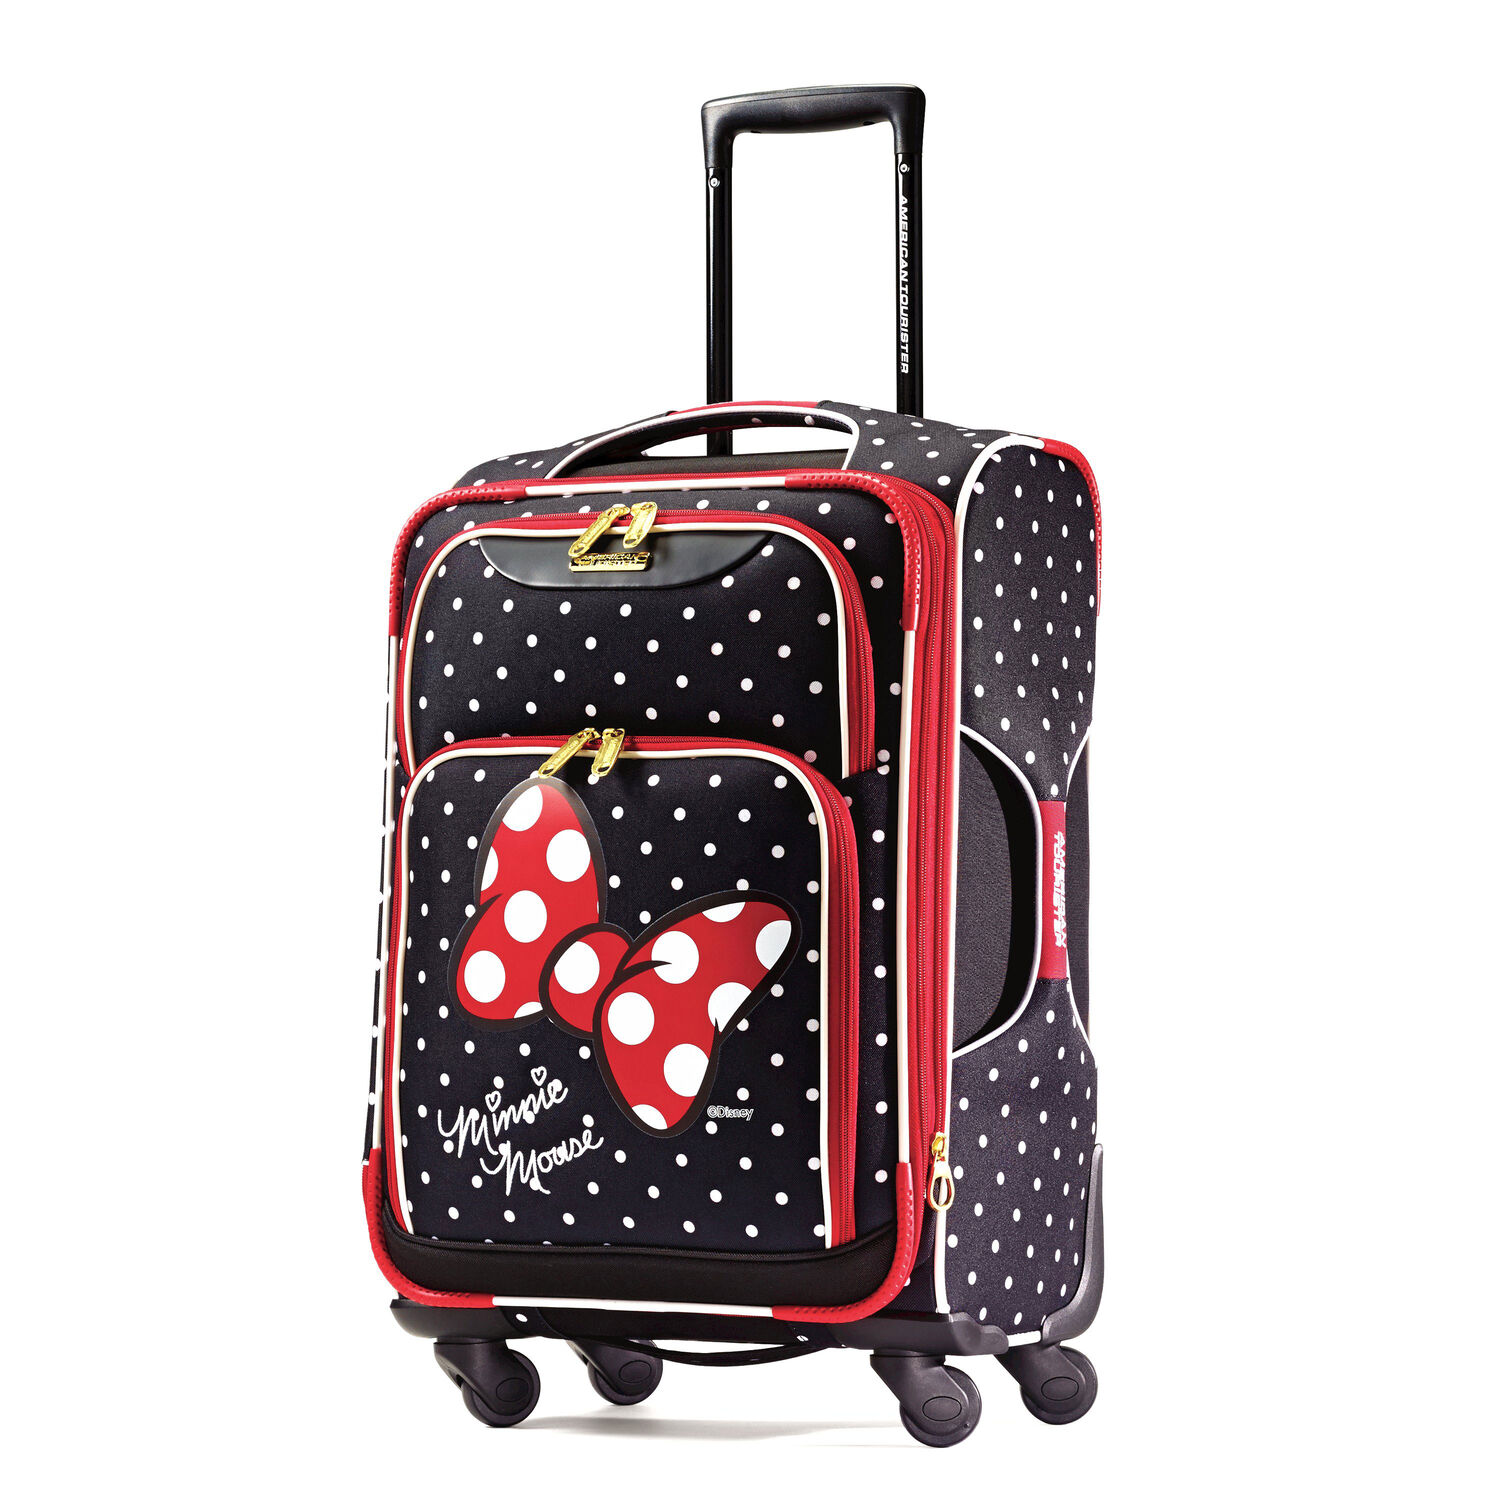 ddef153b969 American Tourister Disney Minnie Mouse 21